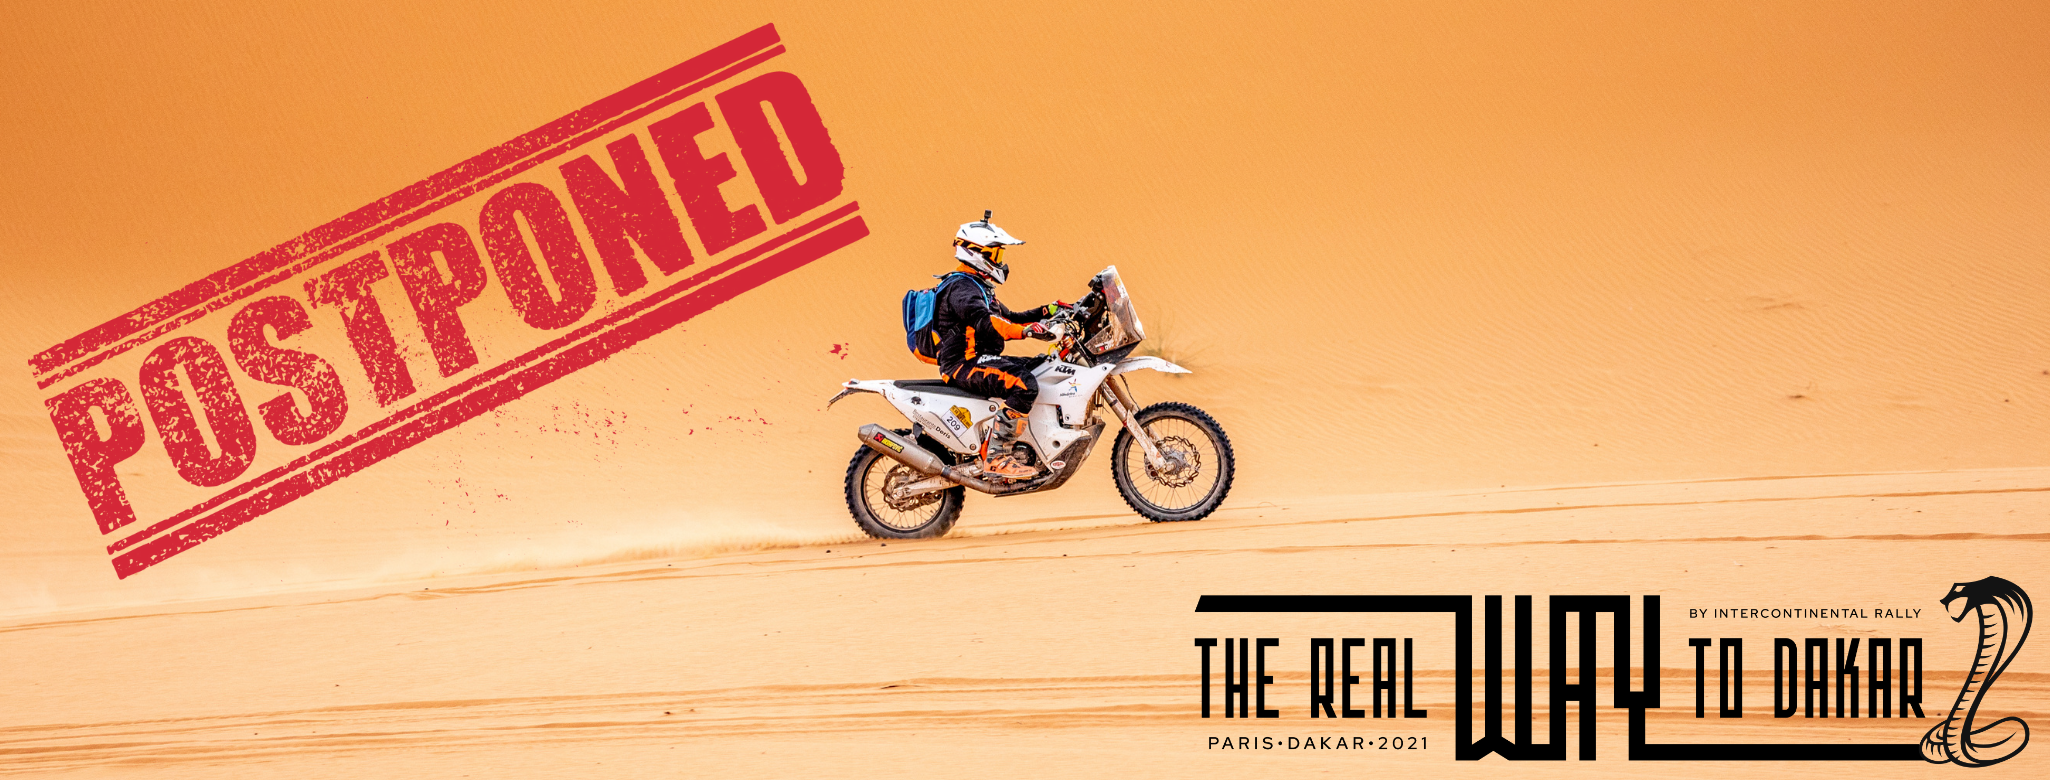 the real way to dakar 2021 has been postponed to 2022